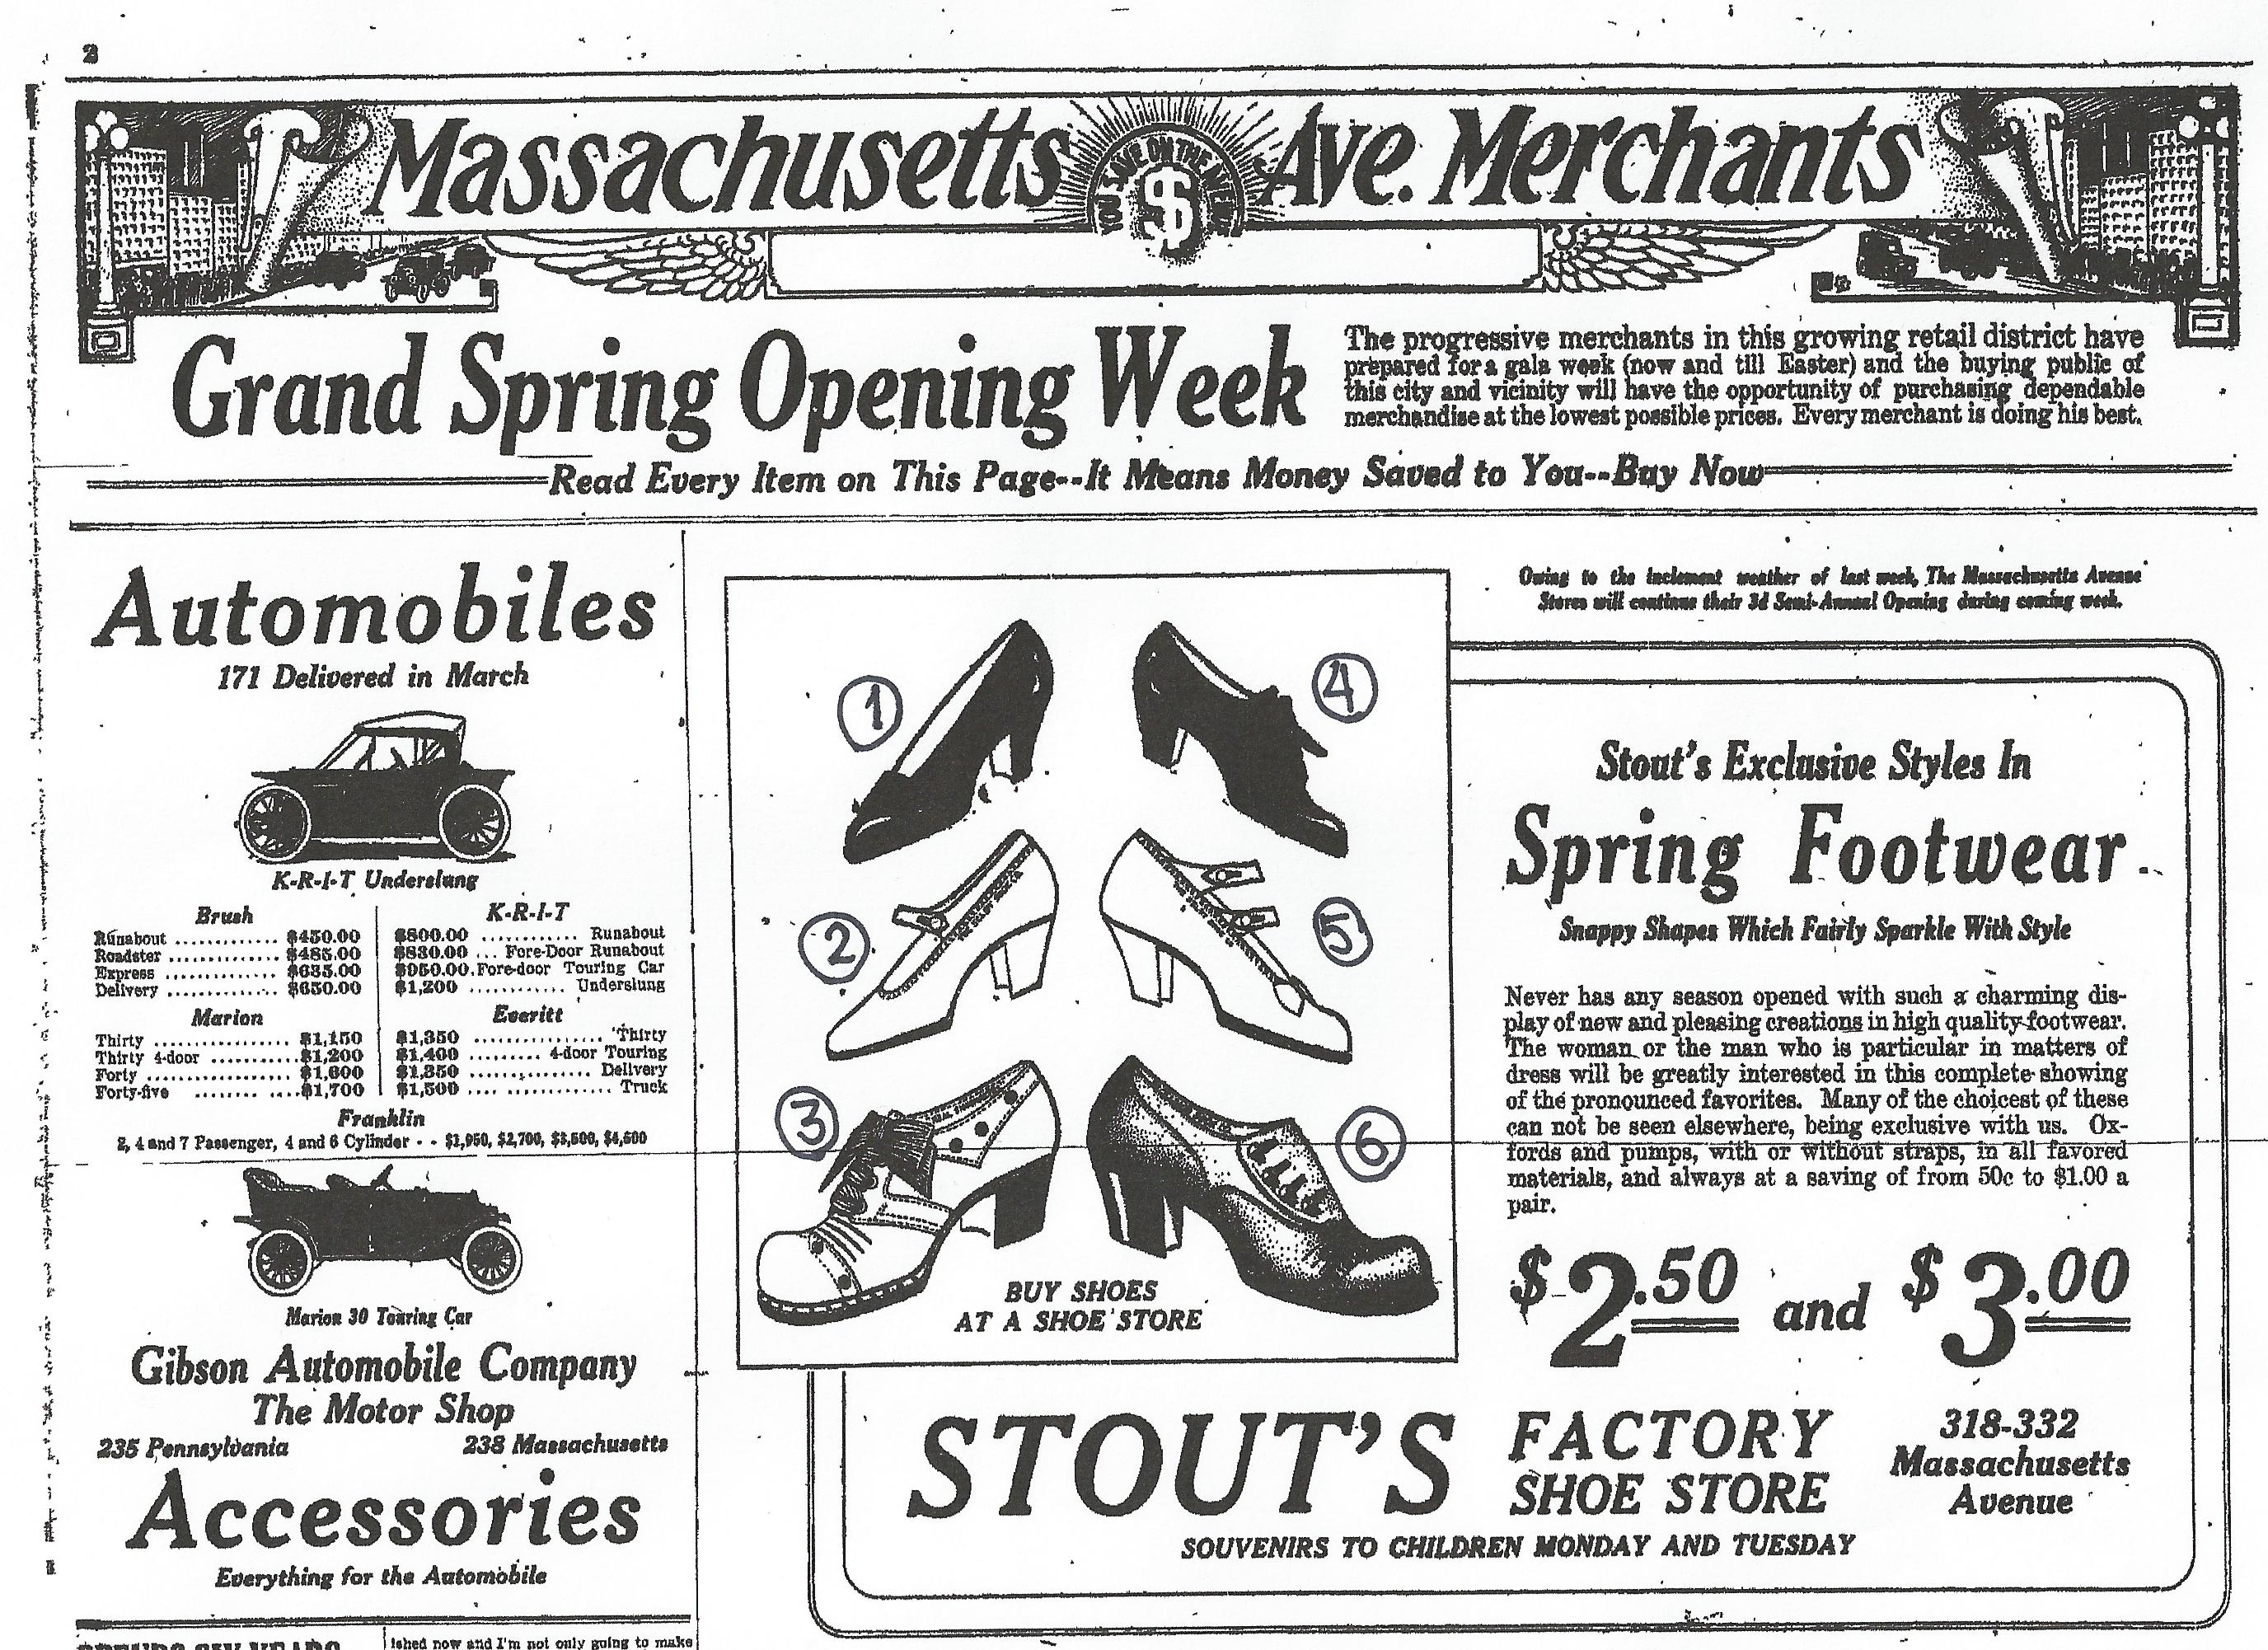 Sunday Adverts: Stout's Shoes & the Circular Nature of Styles